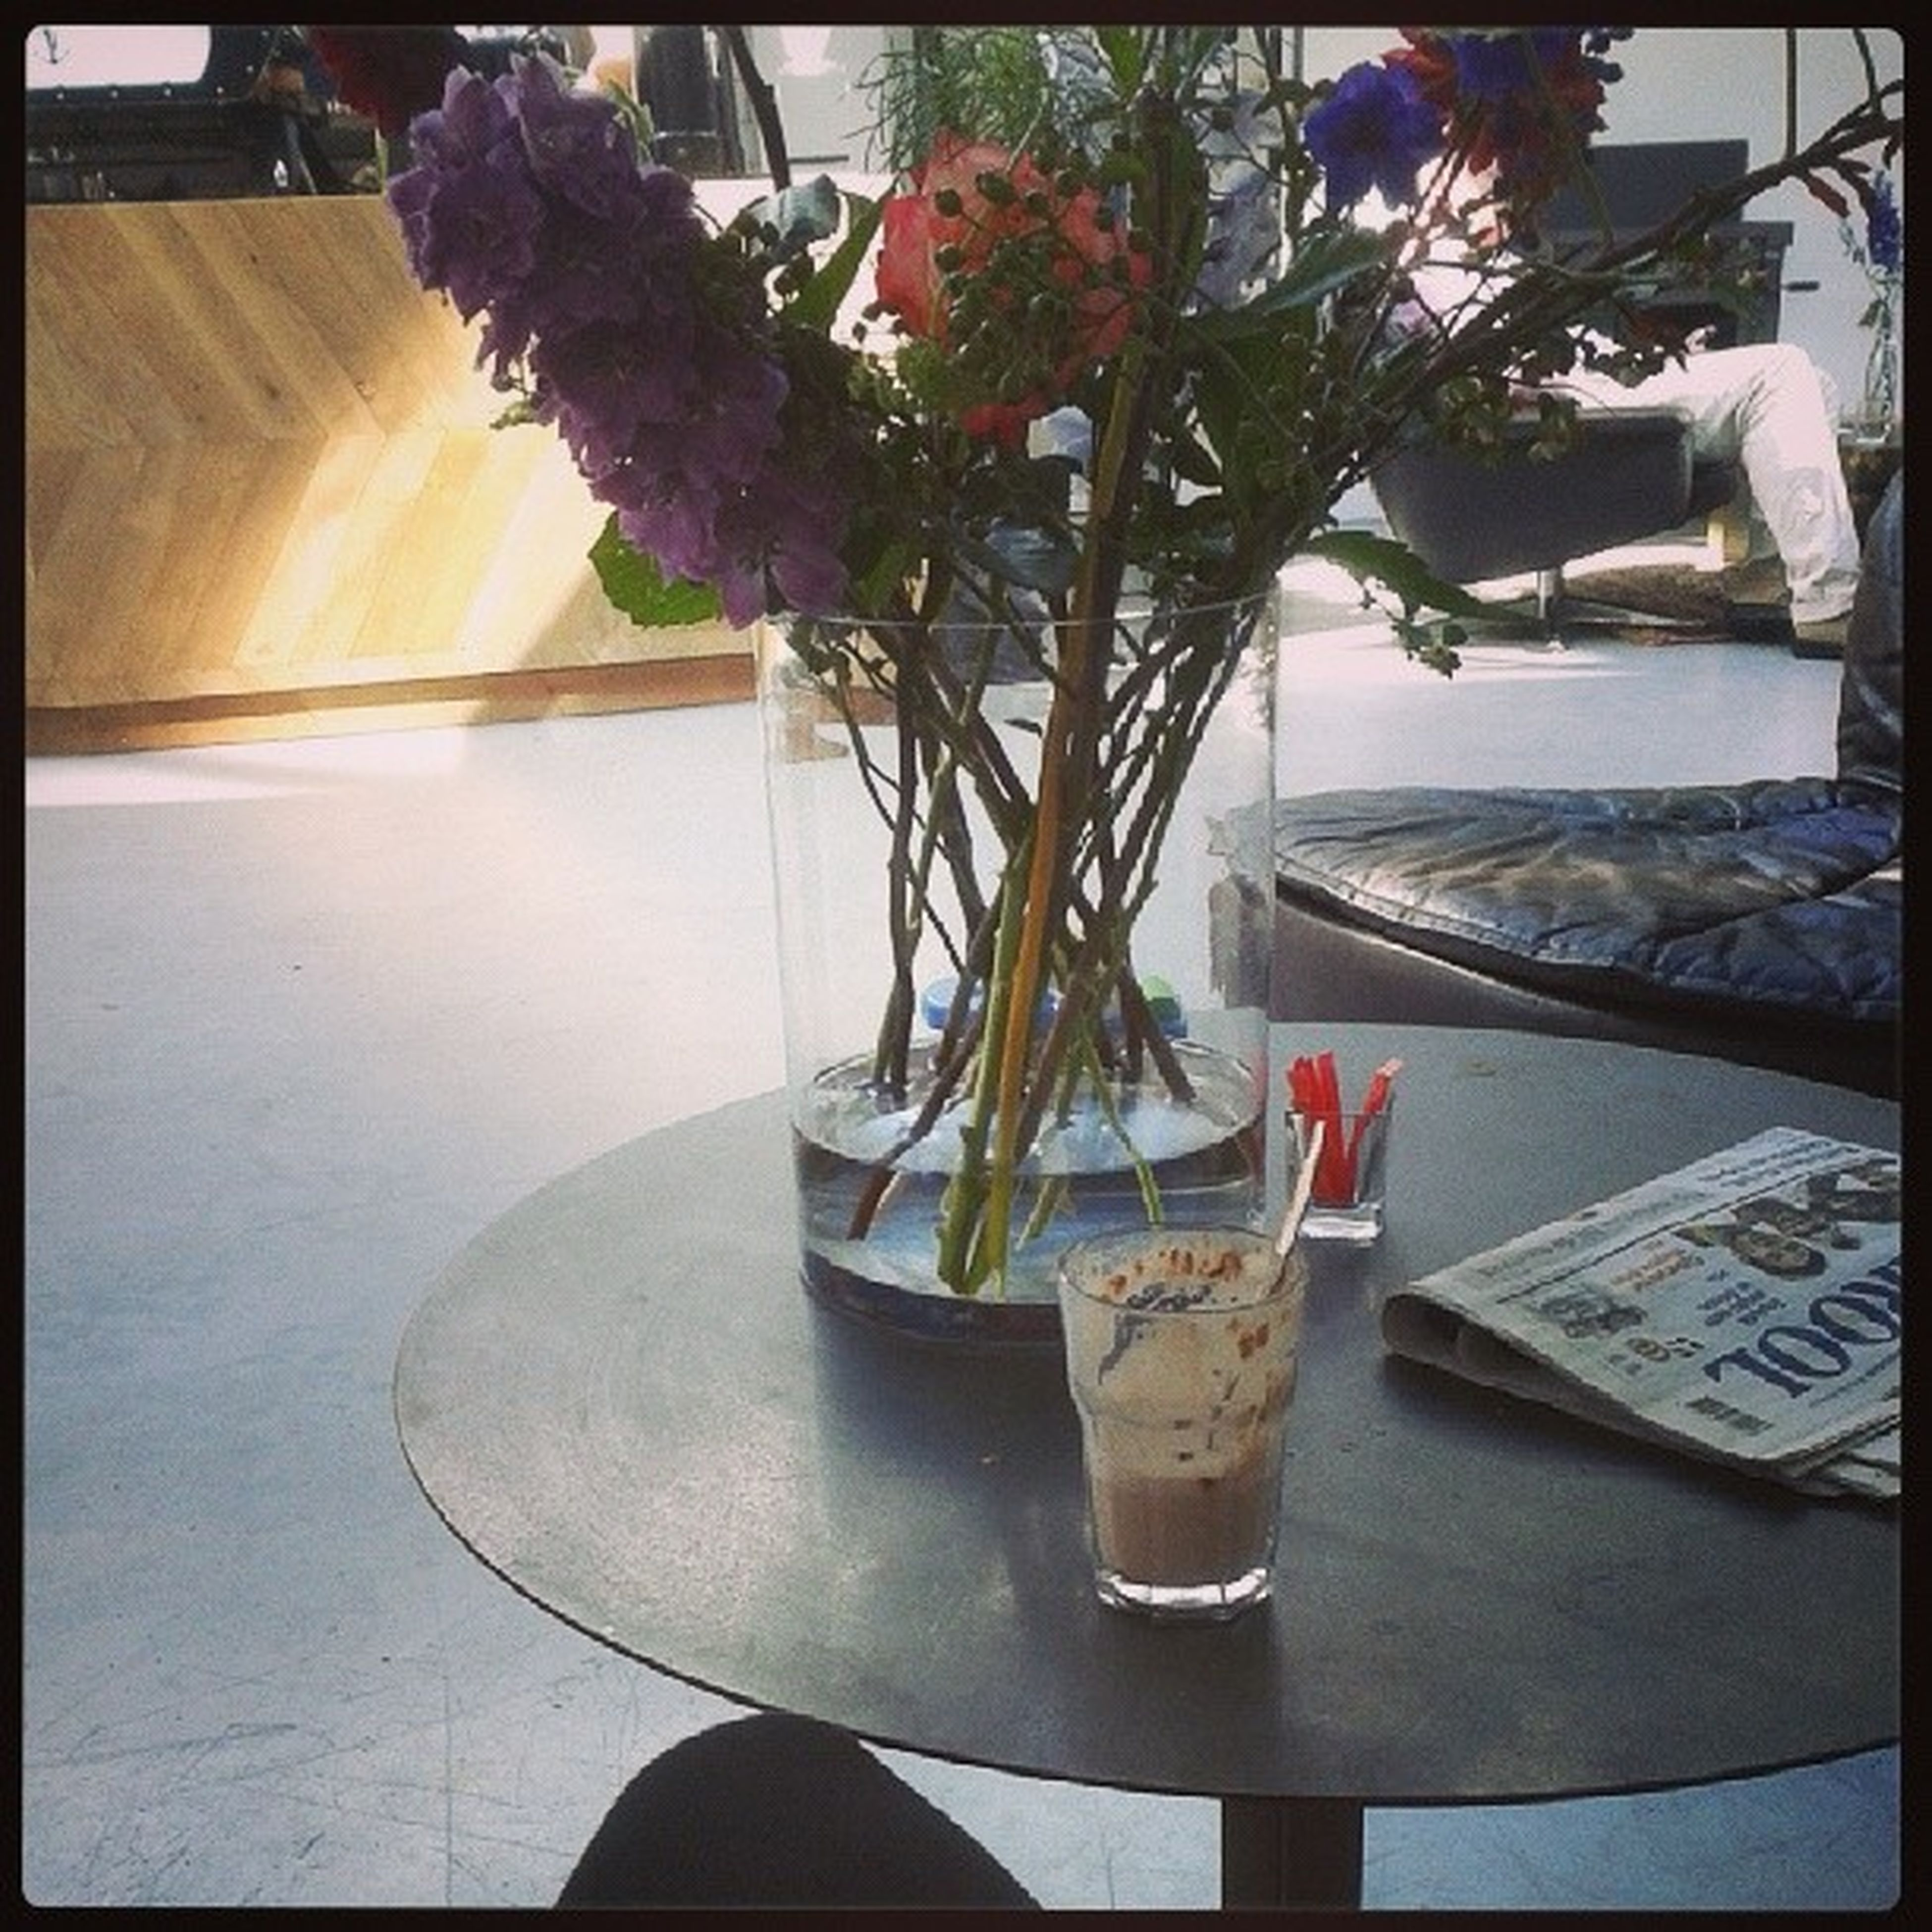 transfer print, table, flower, potted plant, auto post production filter, indoors, freshness, vase, growth, plant, flower pot, chair, sunlight, fragility, restaurant, nature, day, no people, close-up, decoration